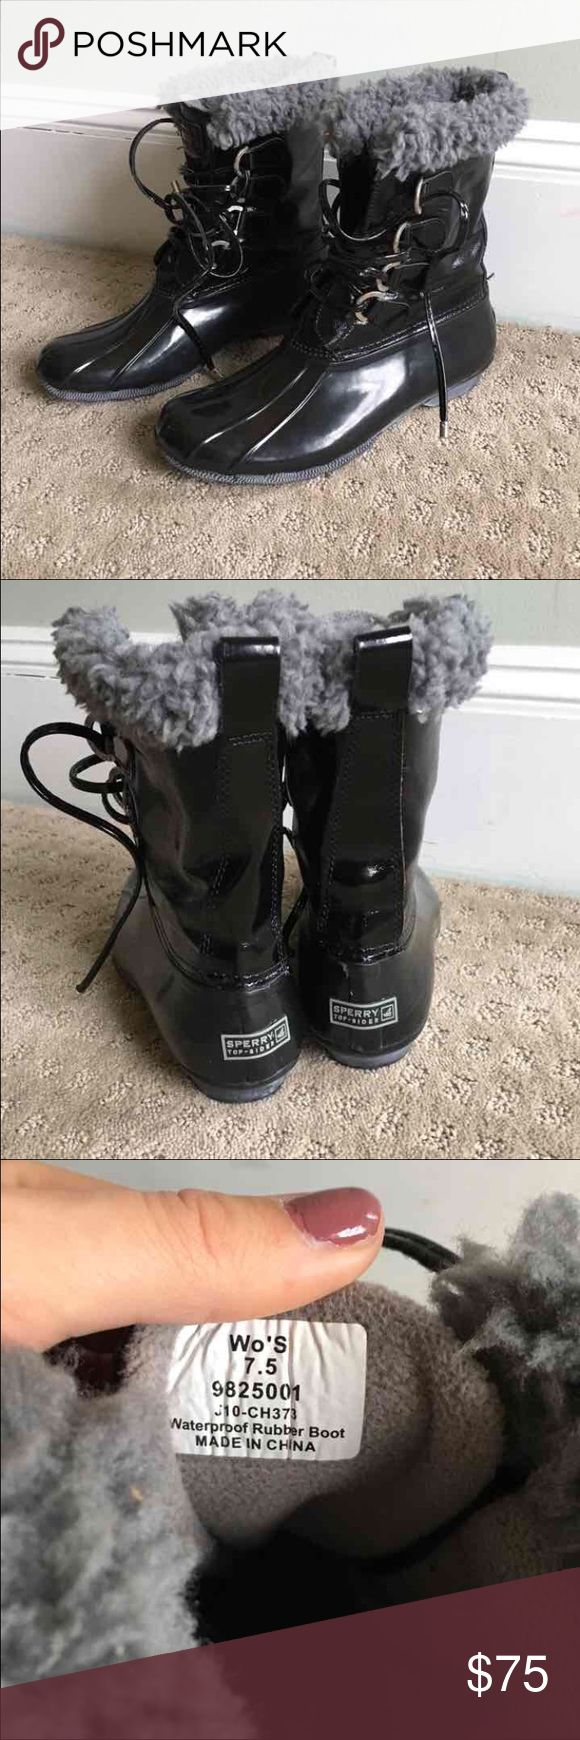 Sperry Winter boots In great condition... Like new.... Gently used and size is women's 7.5. Good for rain and snow. Sperry Top-Sider Shoes Winter & Rain Boots